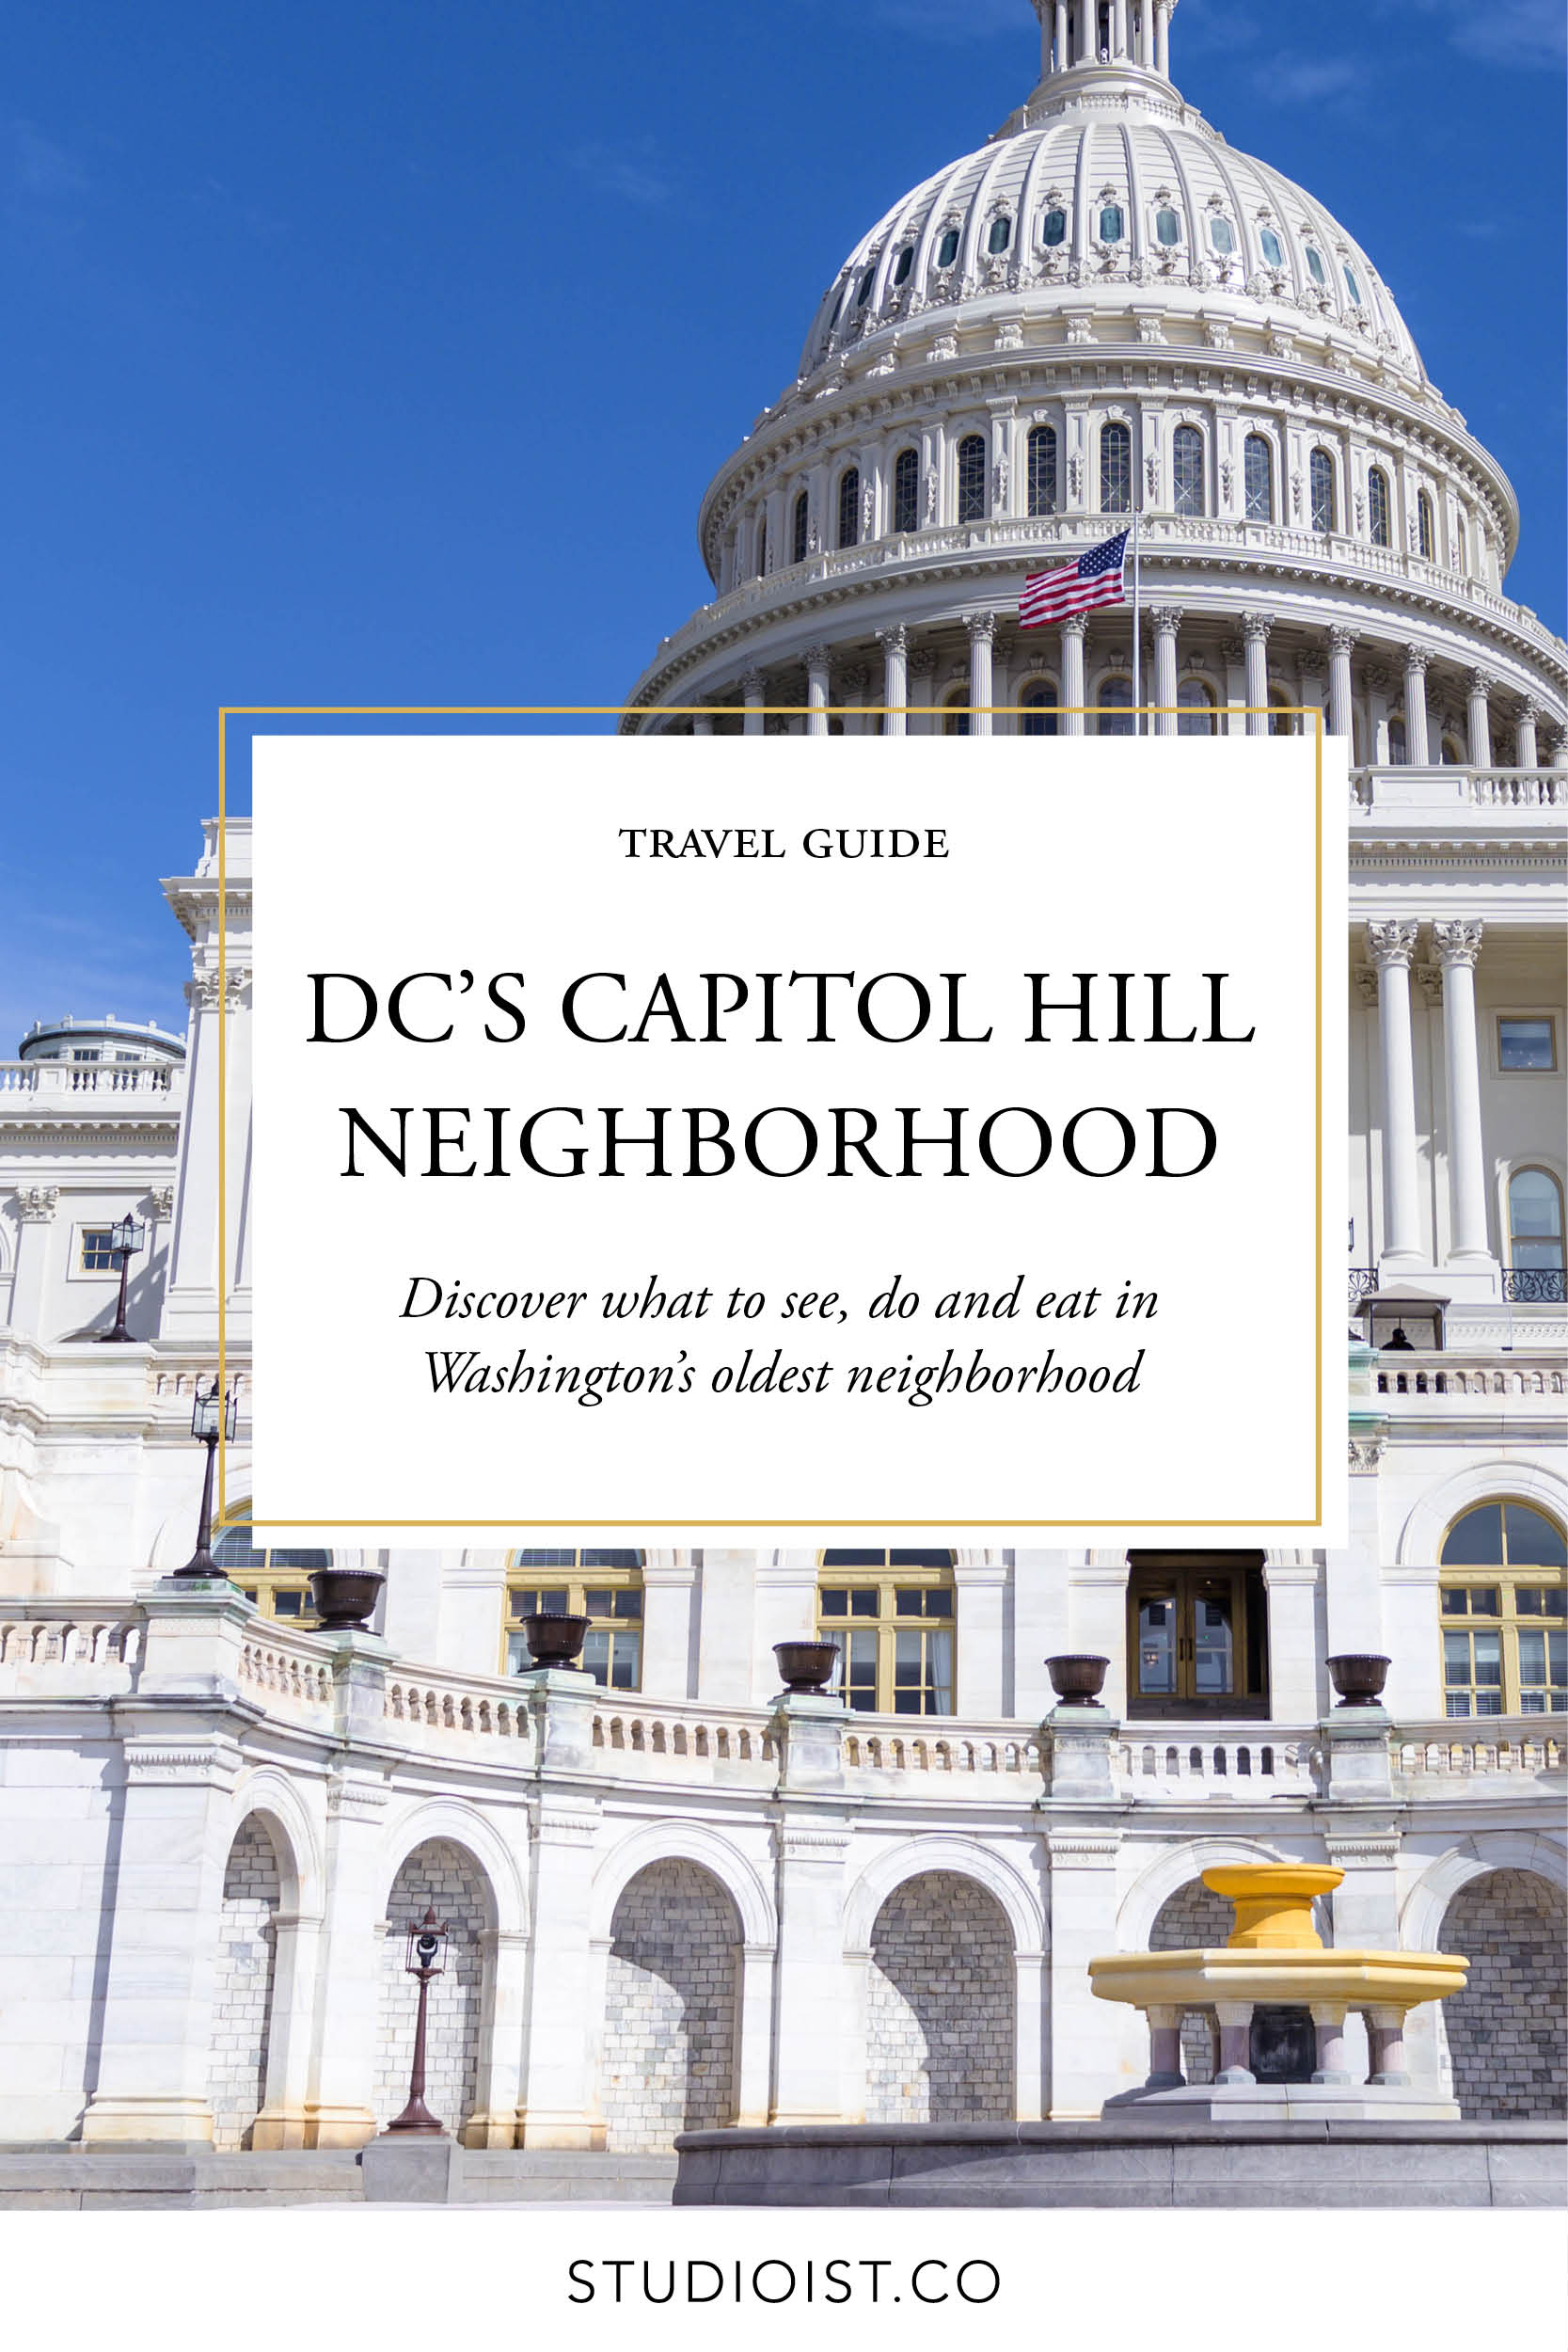 Studioist_Pinterest Design Travel_CapitolHill.jpg